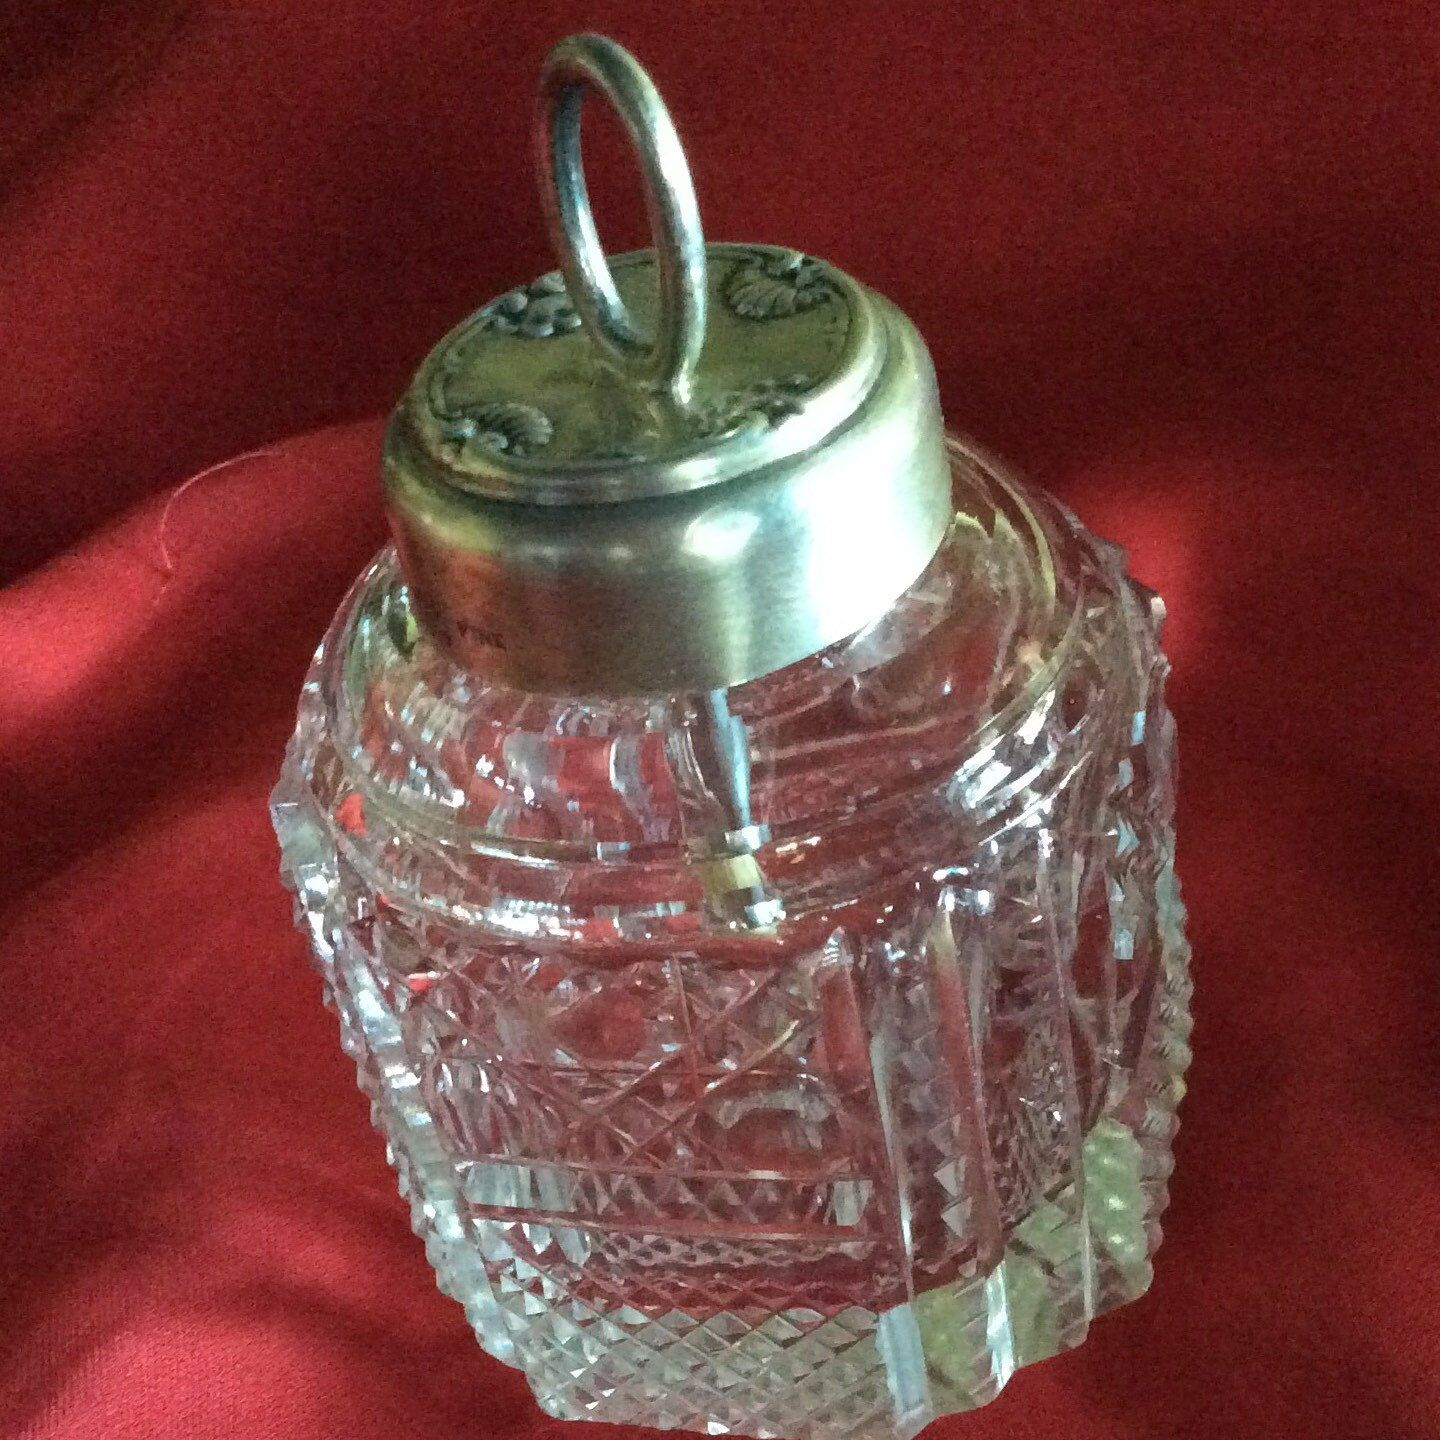 The ultimate accessory for your desk, this stunning Sterling silver topped glue pot .  RARE AND LOVELY!